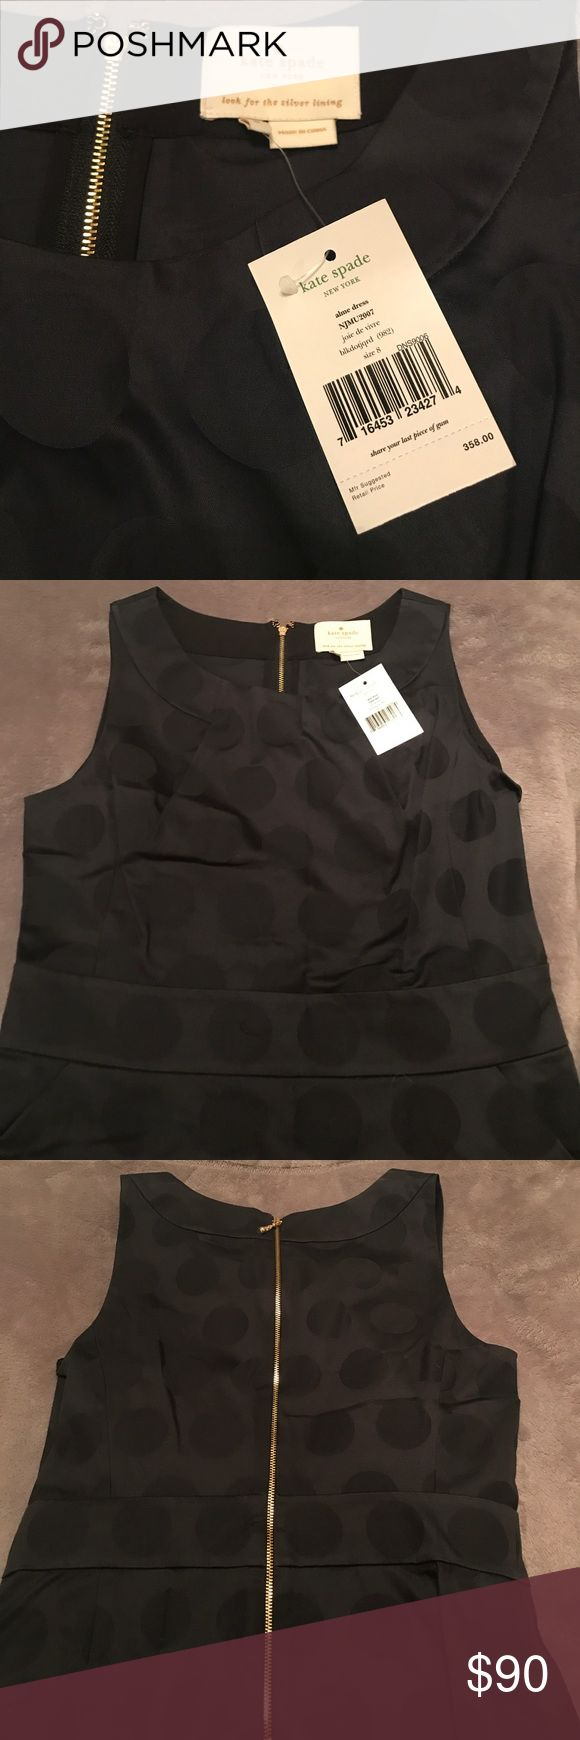 Kate Spade Black Alme Dress Super cute black on black polka dot dress. Great for the office or a night out on the town. kate spade Dresses